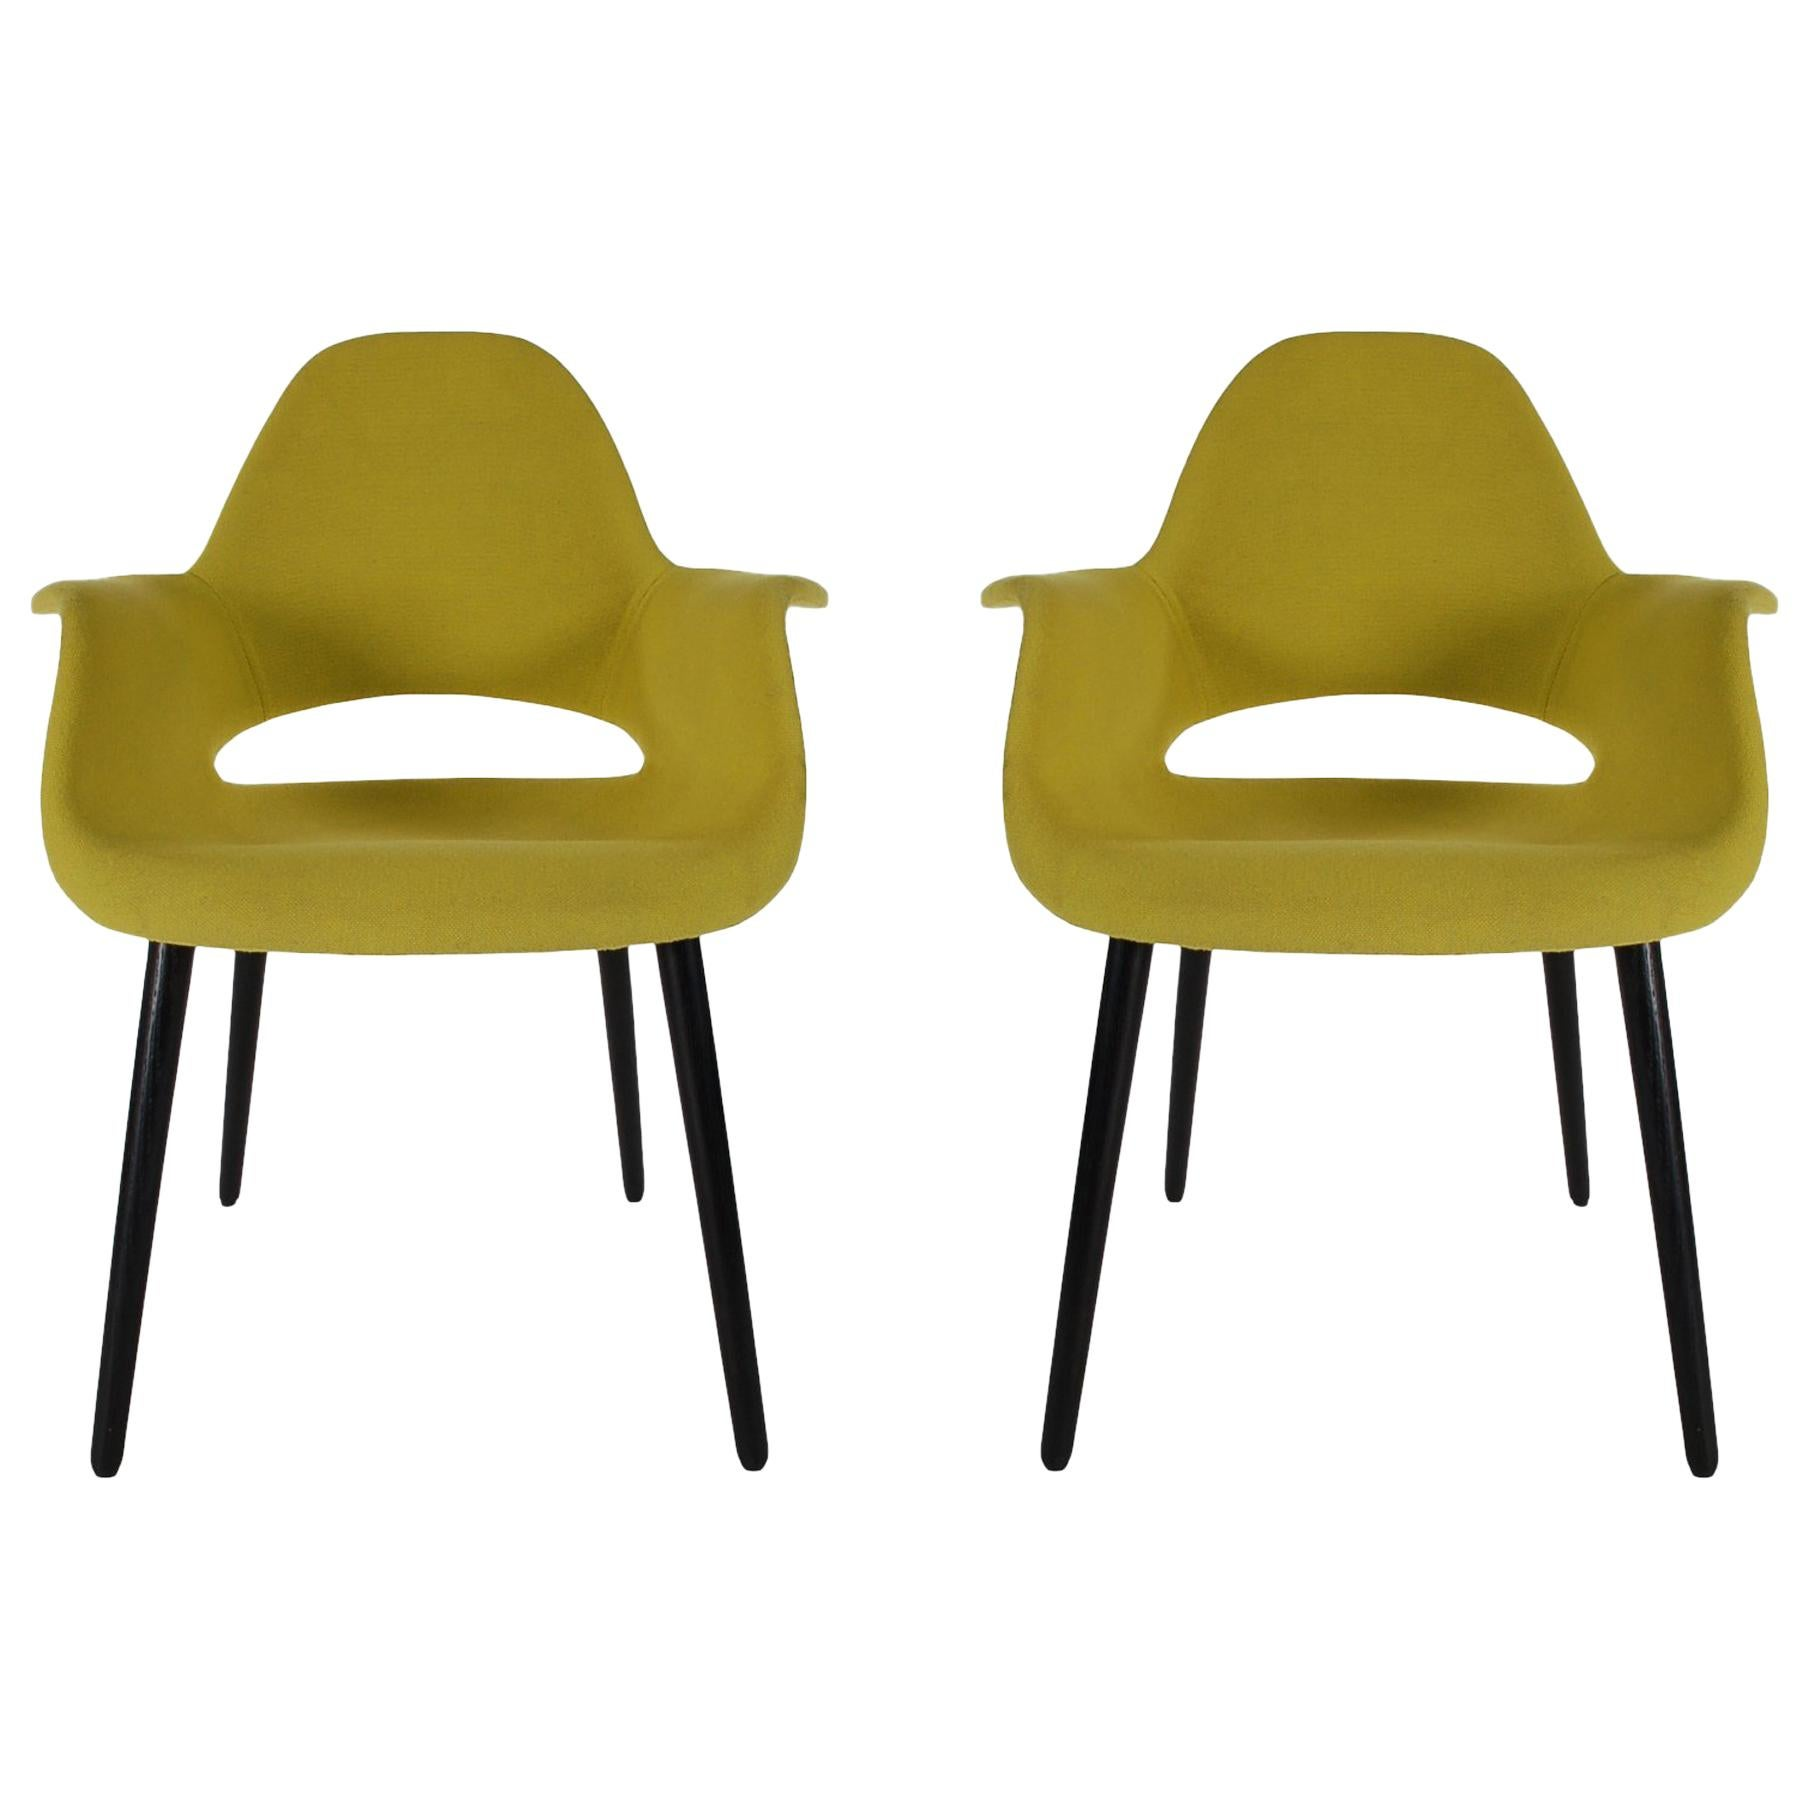 Mid-Century Modern Armchairs or Dining Chairs by Eames and Saarinen for Vitra